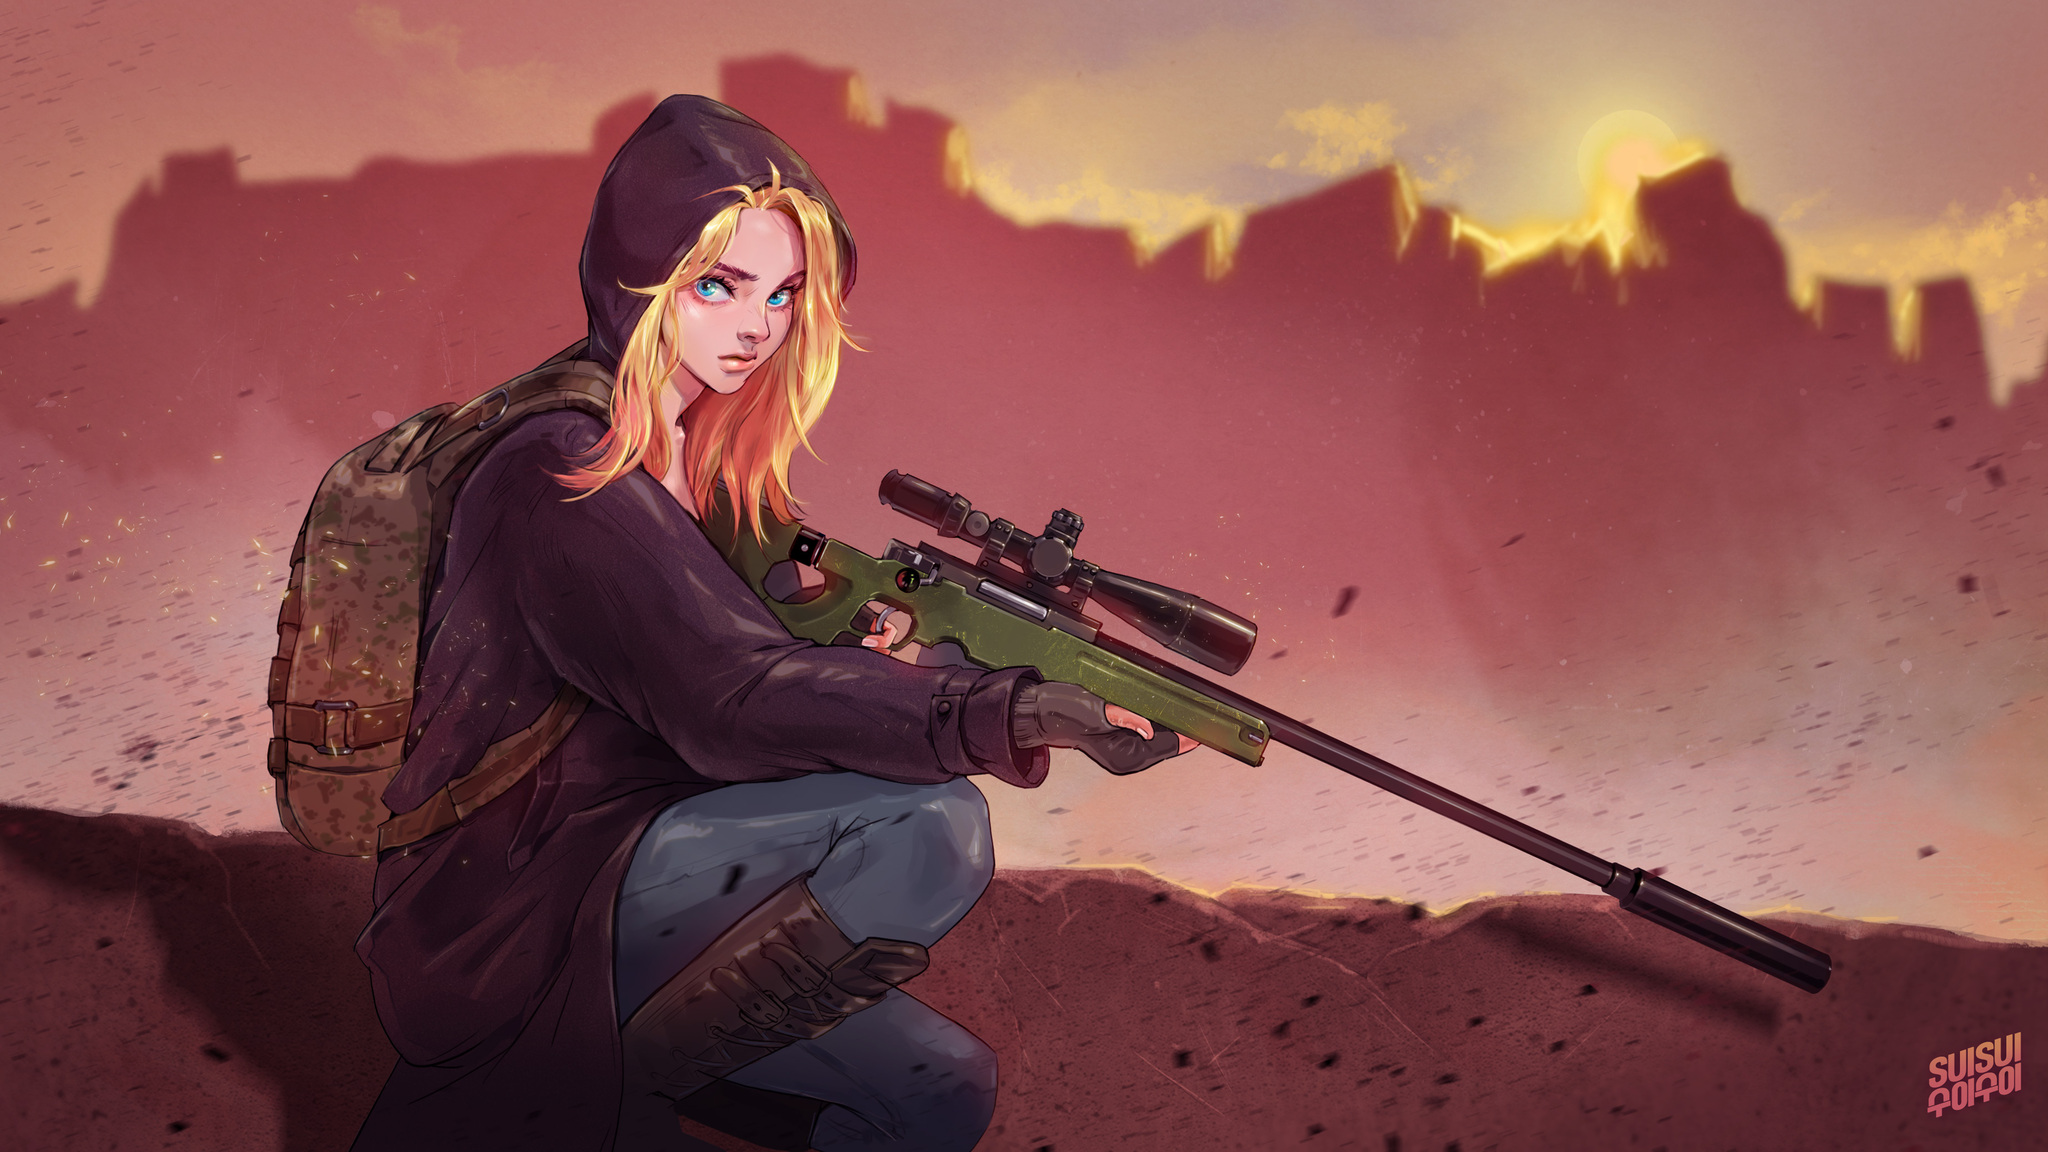 2048x1152 Pubg Game Girl Fanart 2048x1152 Resolution HD 4k